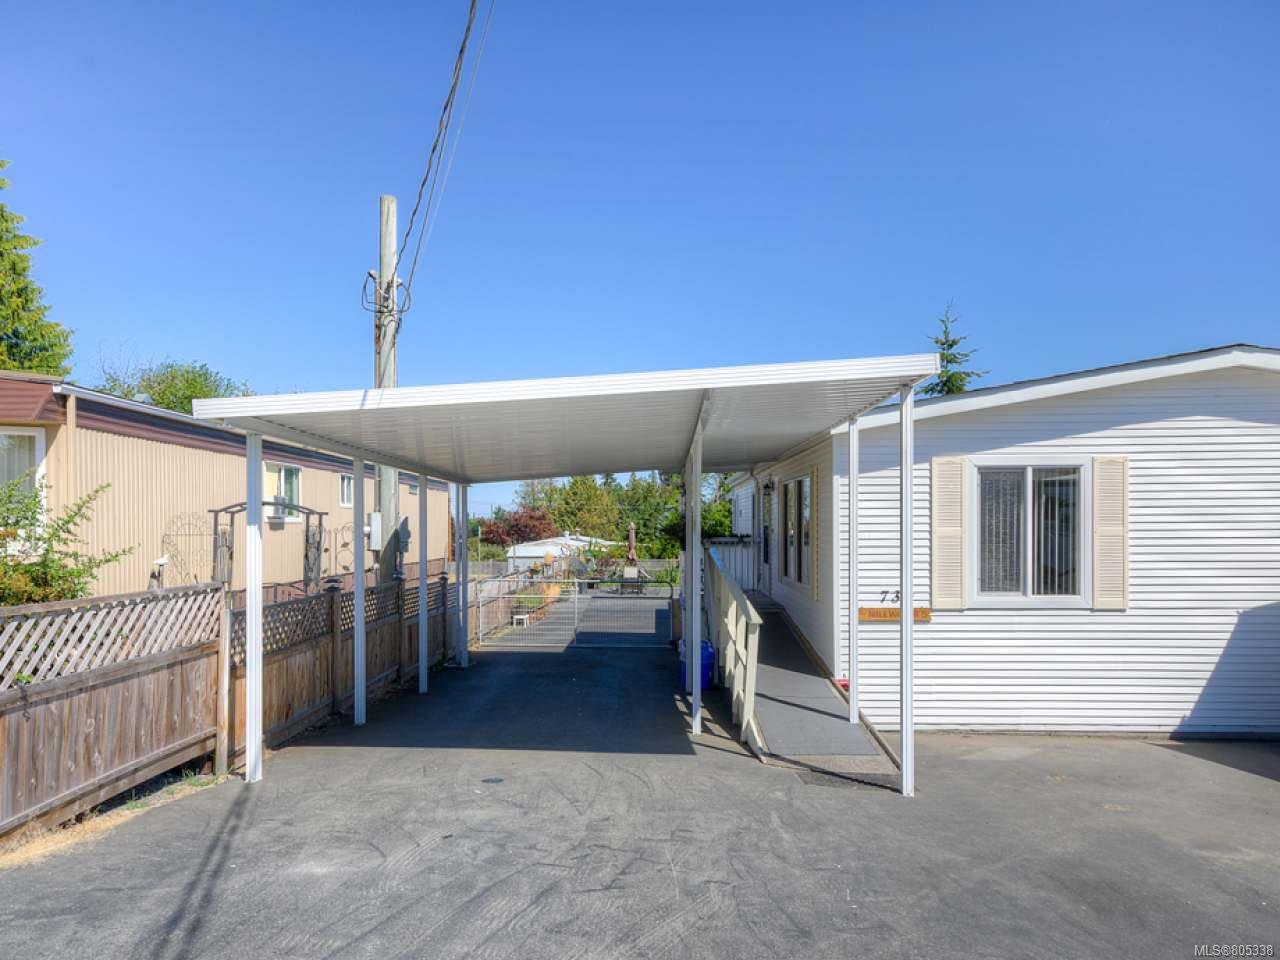 Main Photo: 730 Kasba Cir in PARKSVILLE: PQ French Creek Manufactured Home for sale (Parksville/Qualicum)  : MLS®# 805338